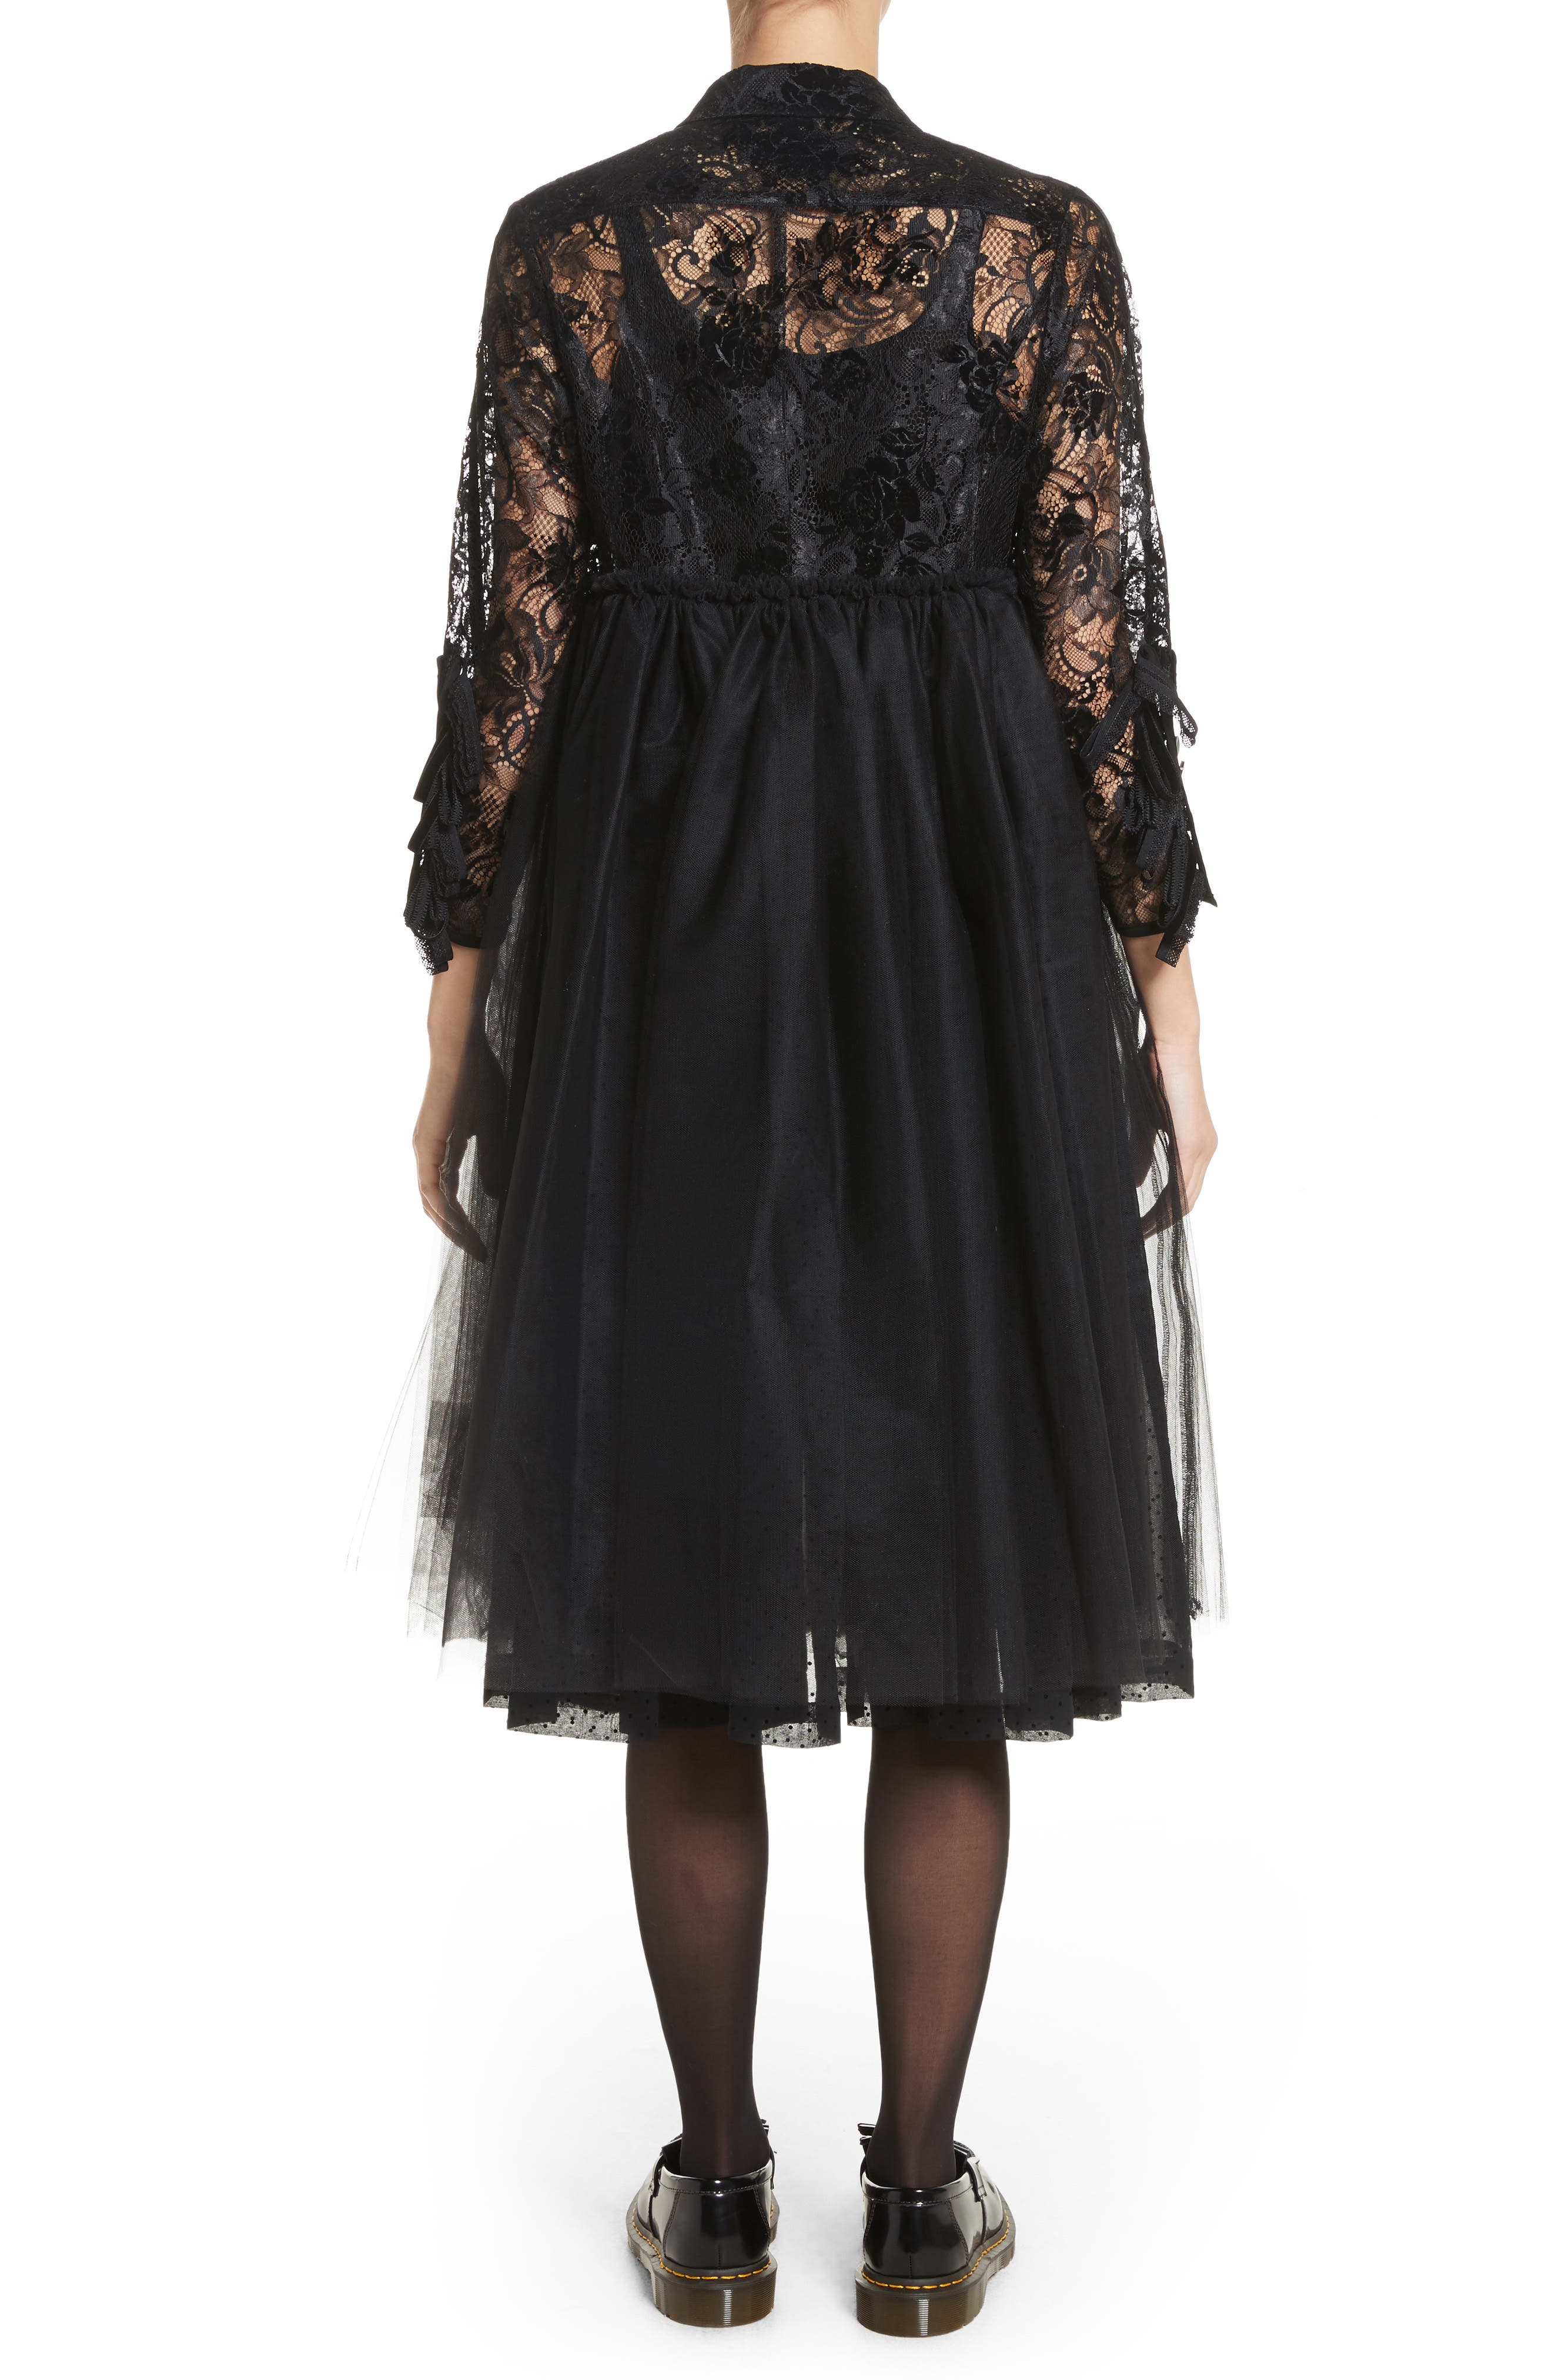 Lace Bodice Shirtdress with Tulle Skirt,                             Alternate thumbnail 2, color,                             Blk/Blk X Blk